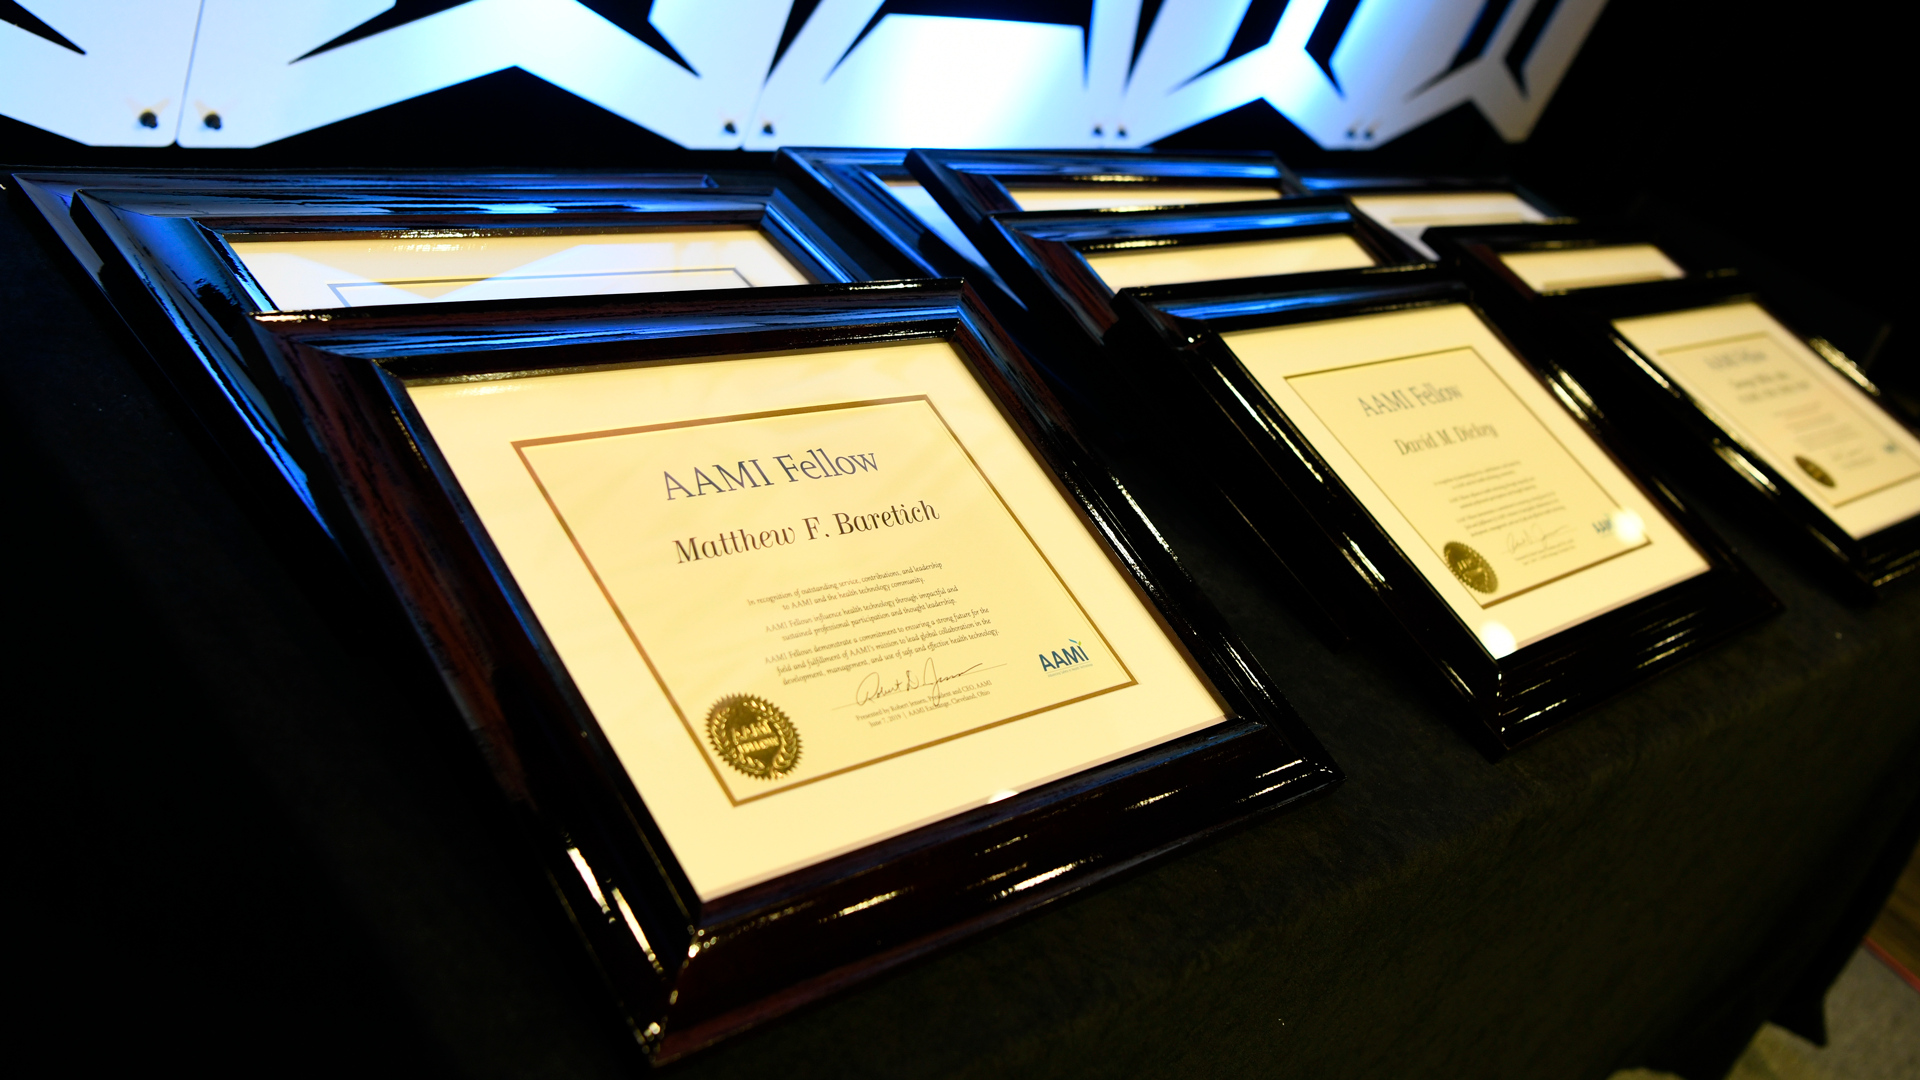 AAMI Fellows plaques ready to be presented to the 2019 AAMI Fellows.